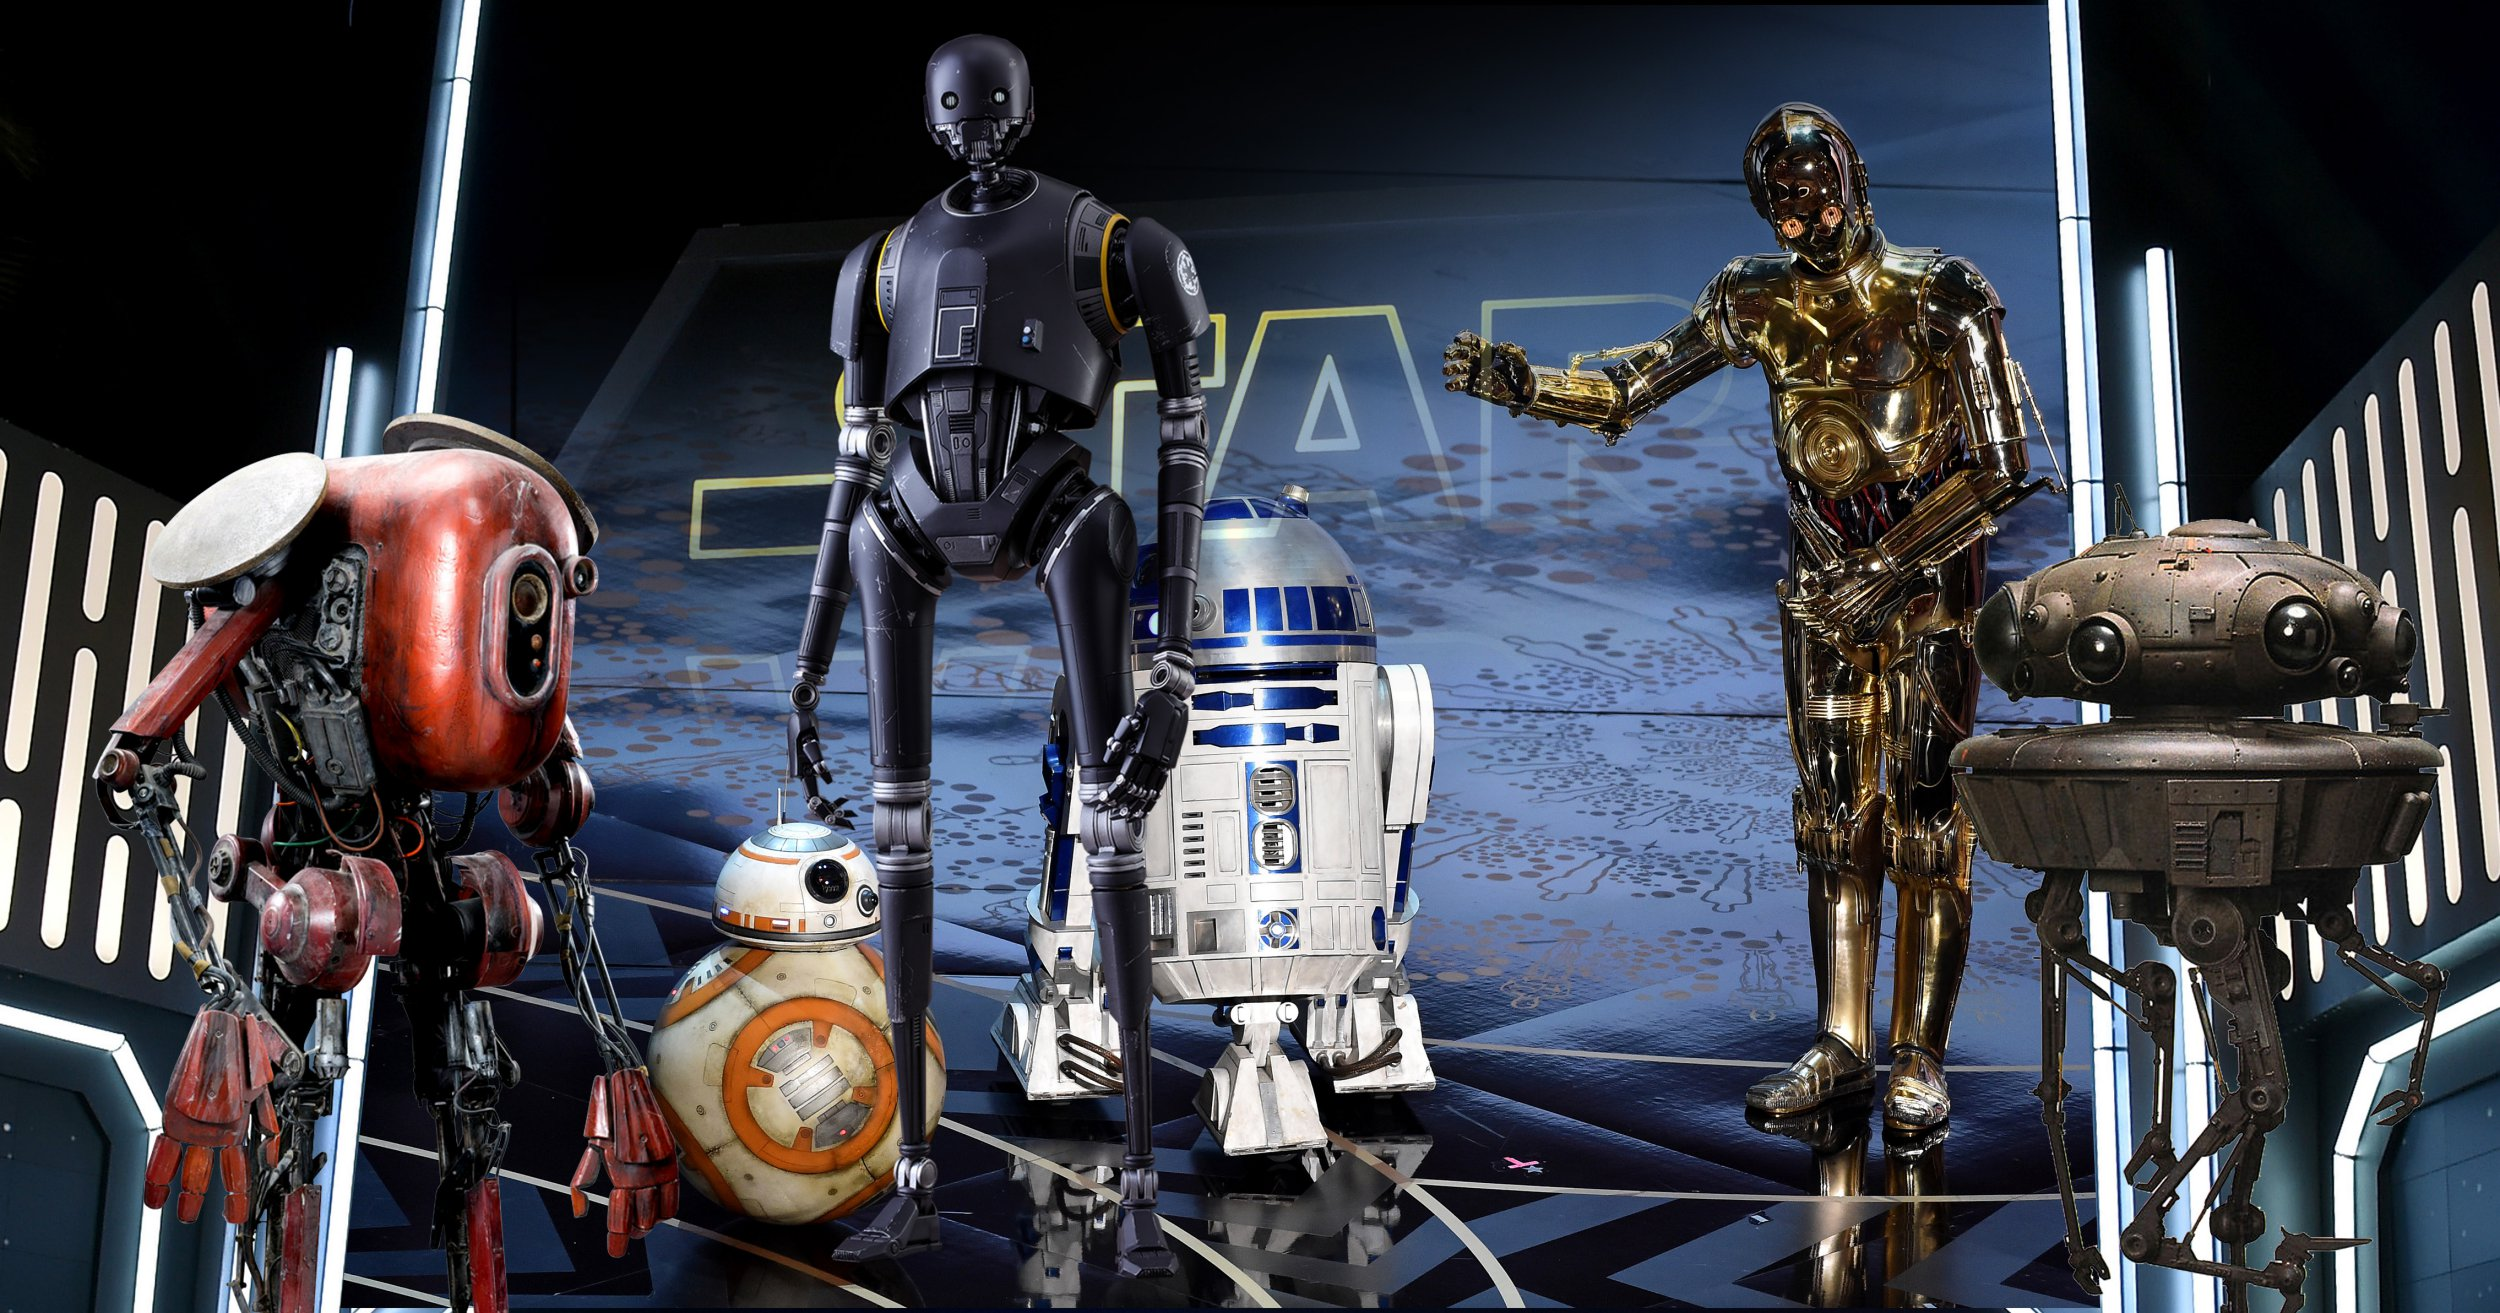 What kind of droids will we be seeing in the new Star Wars Han Solo film?